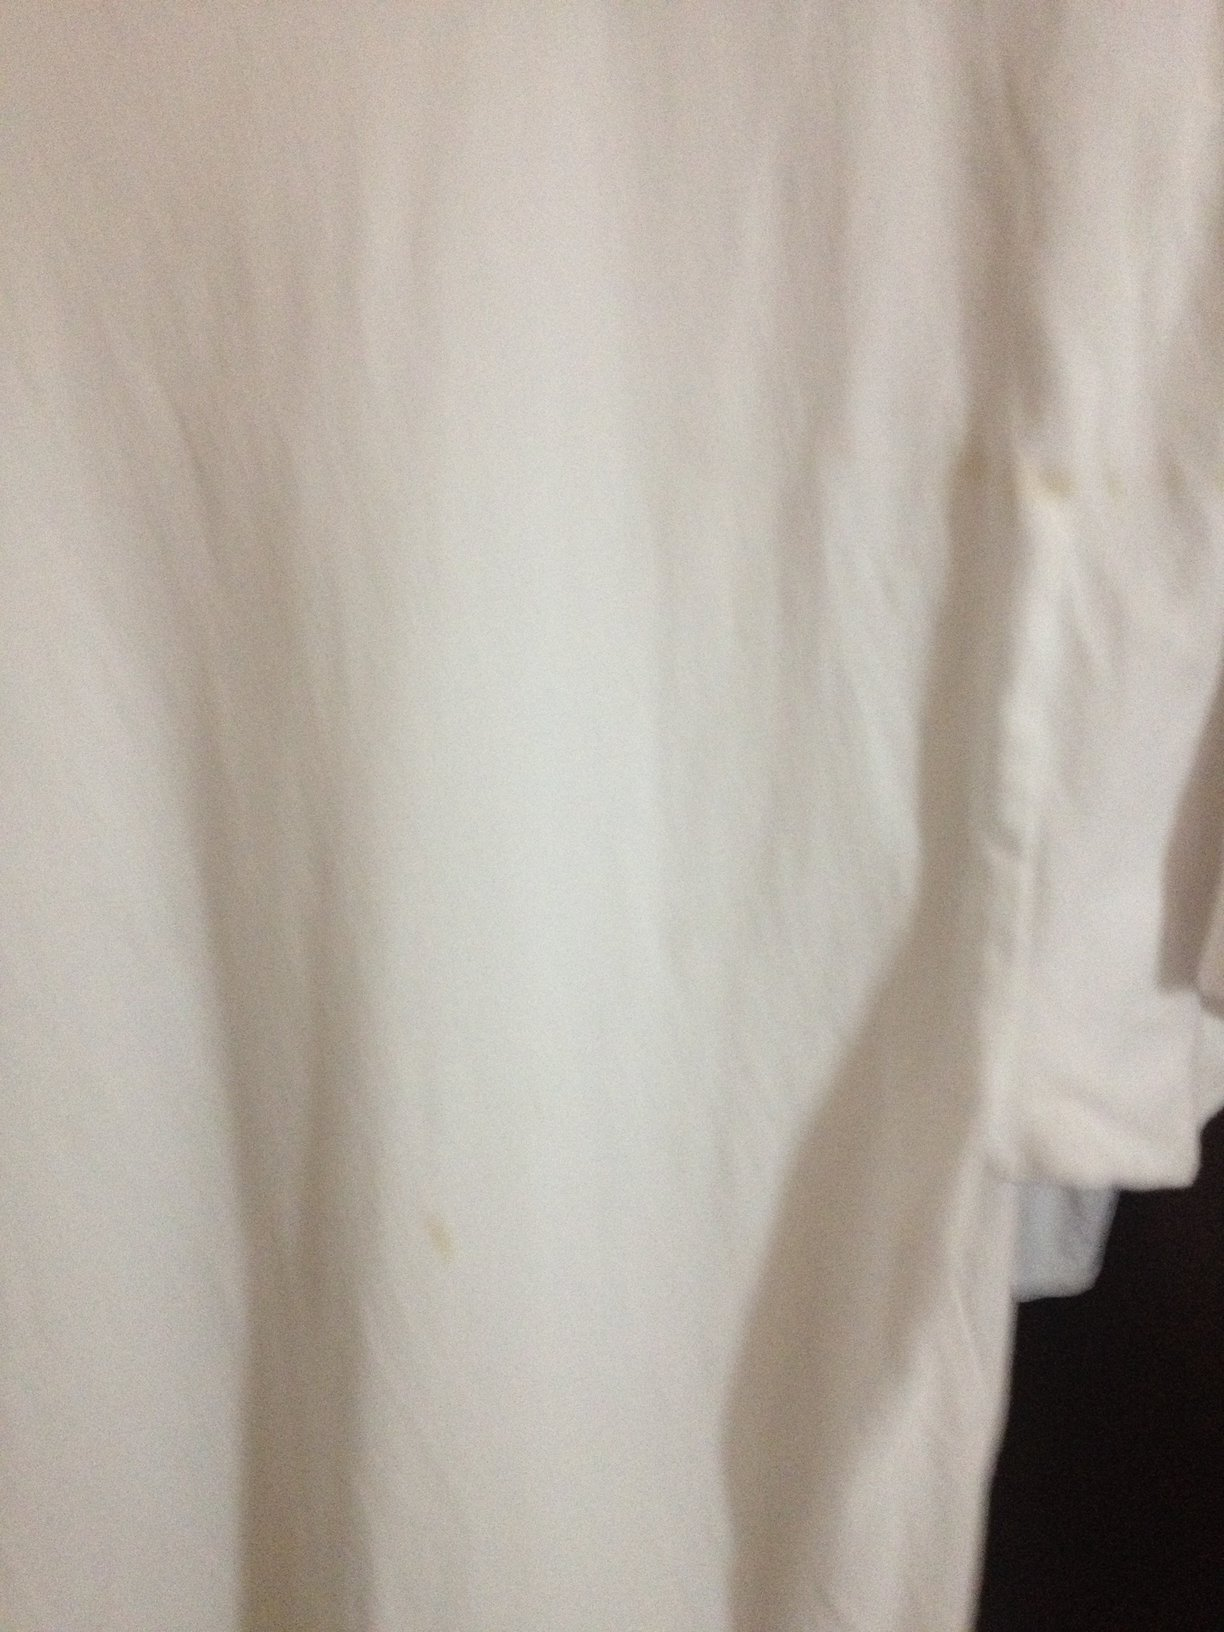 how to clean coffee stain on white shirt